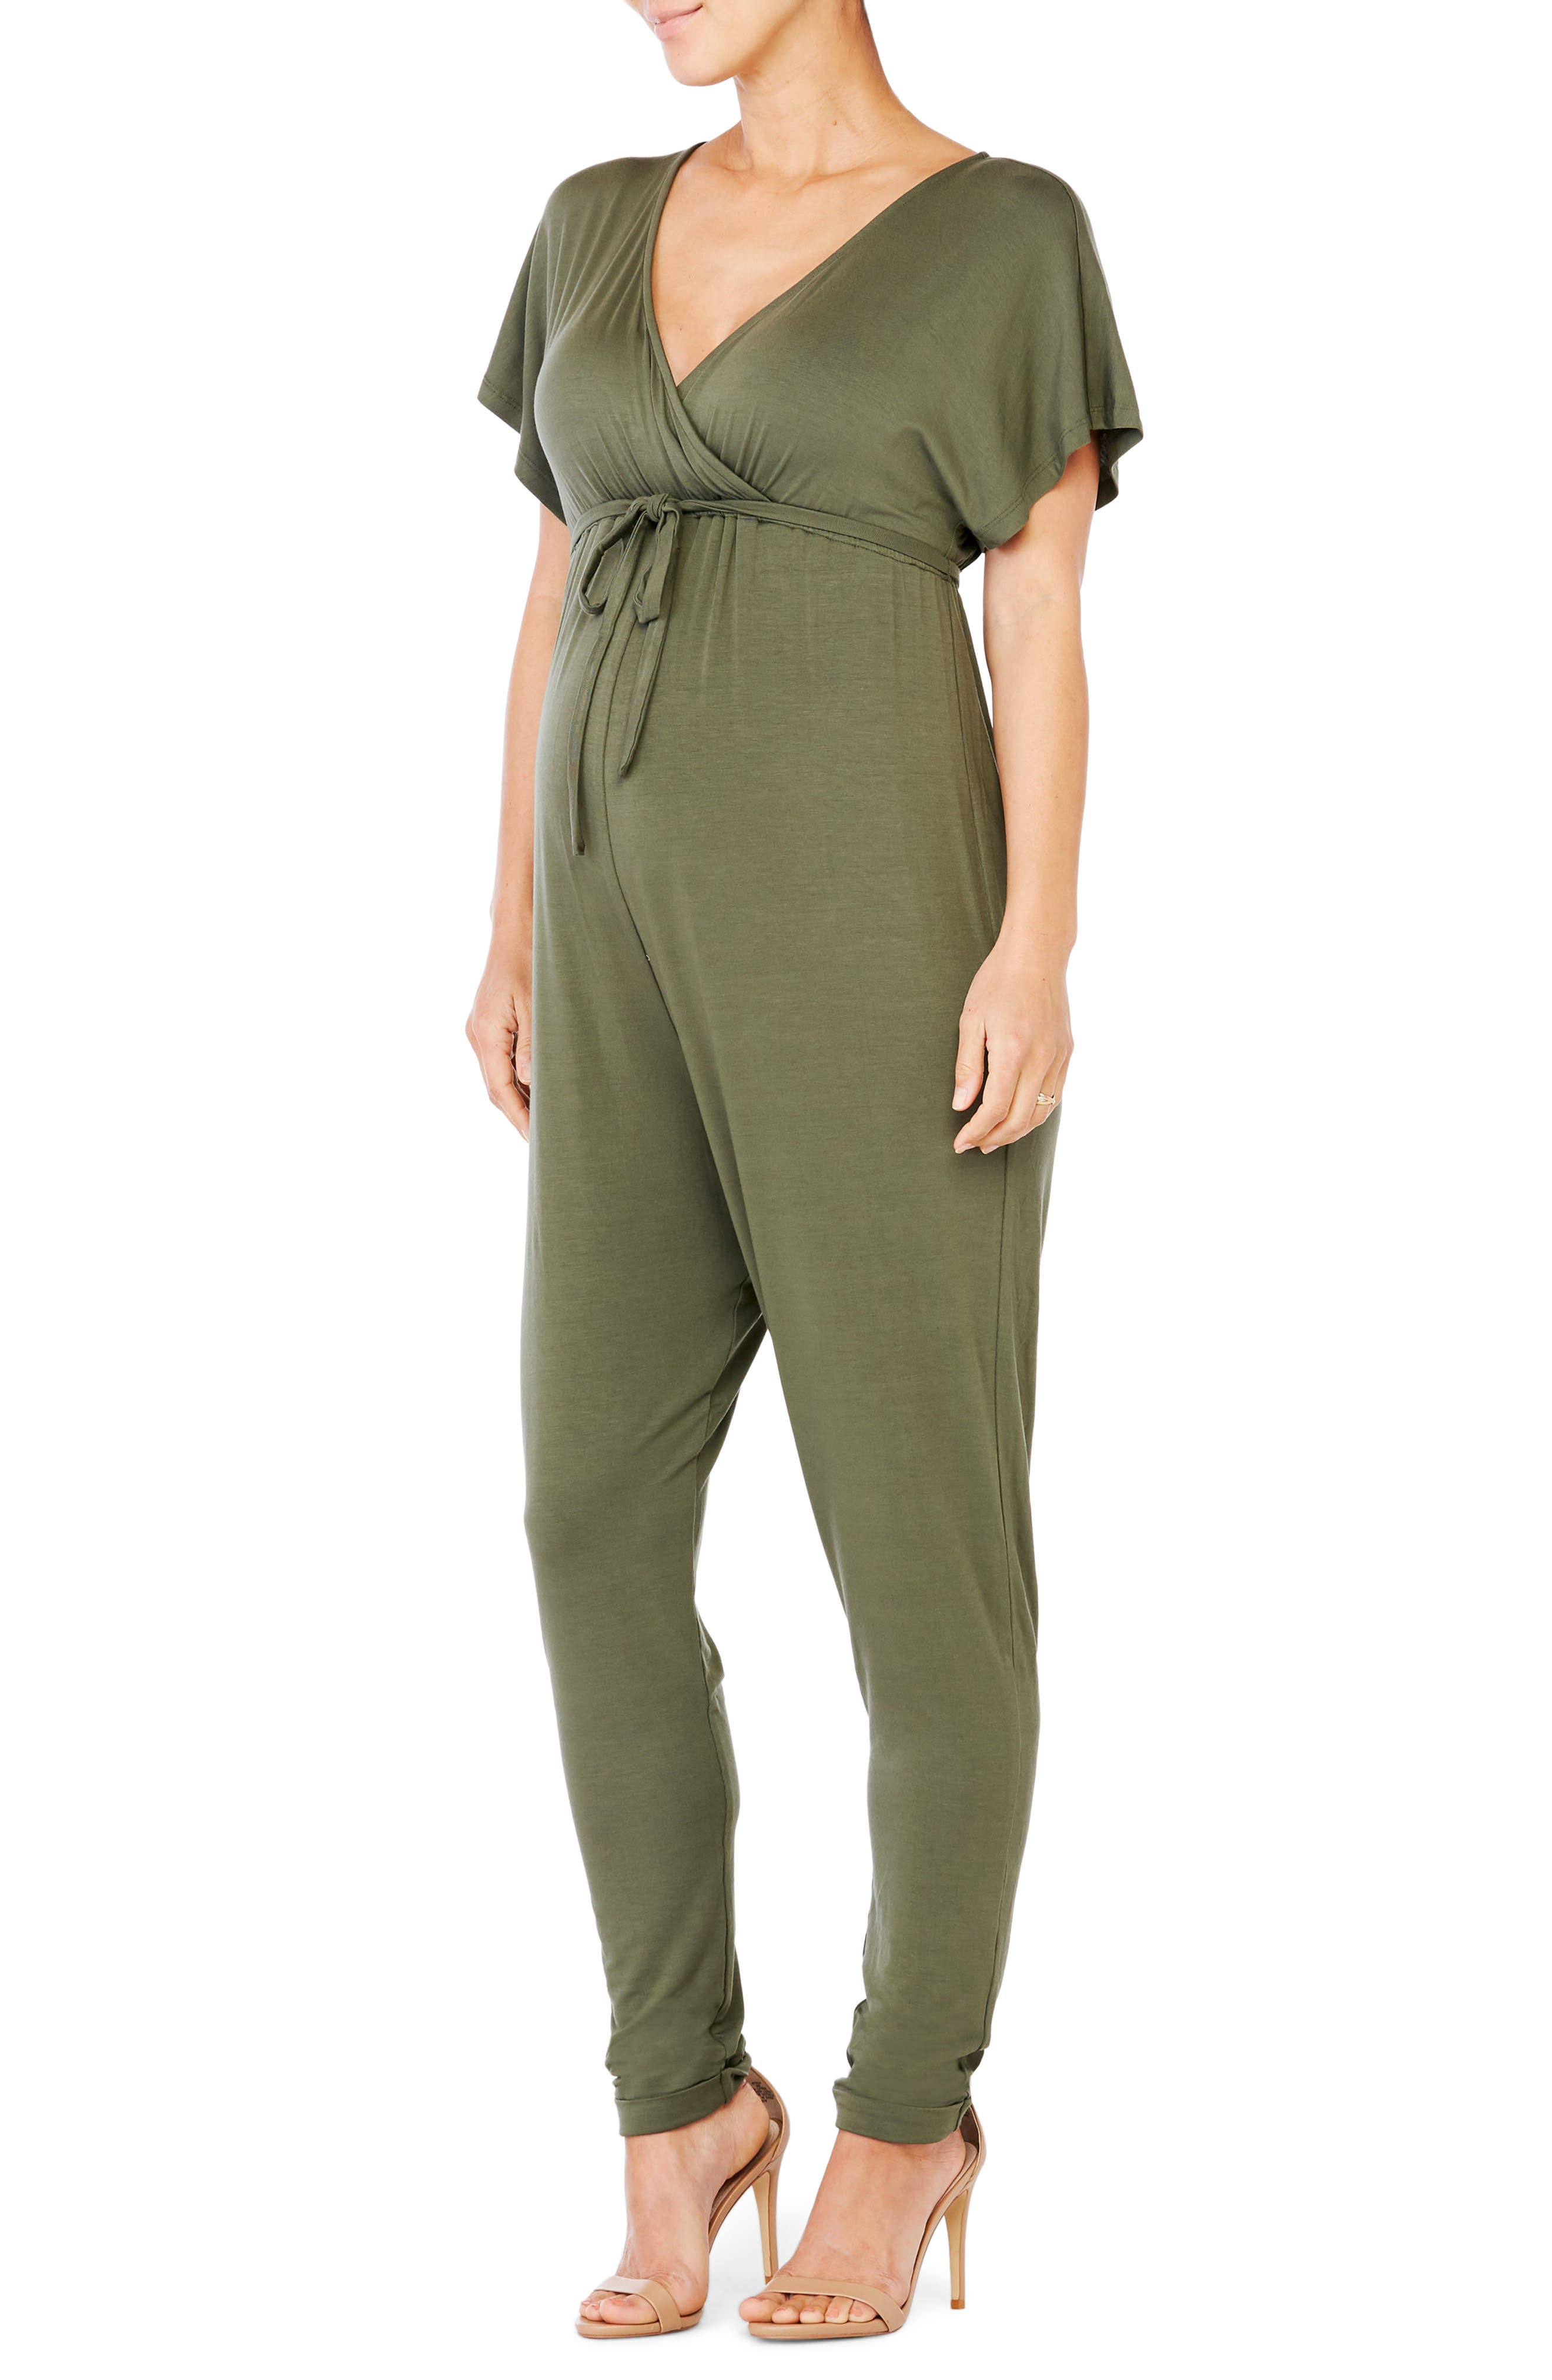 Crossover Maternity Jumpsuit,                             Alternate thumbnail 2, color,                             Olive